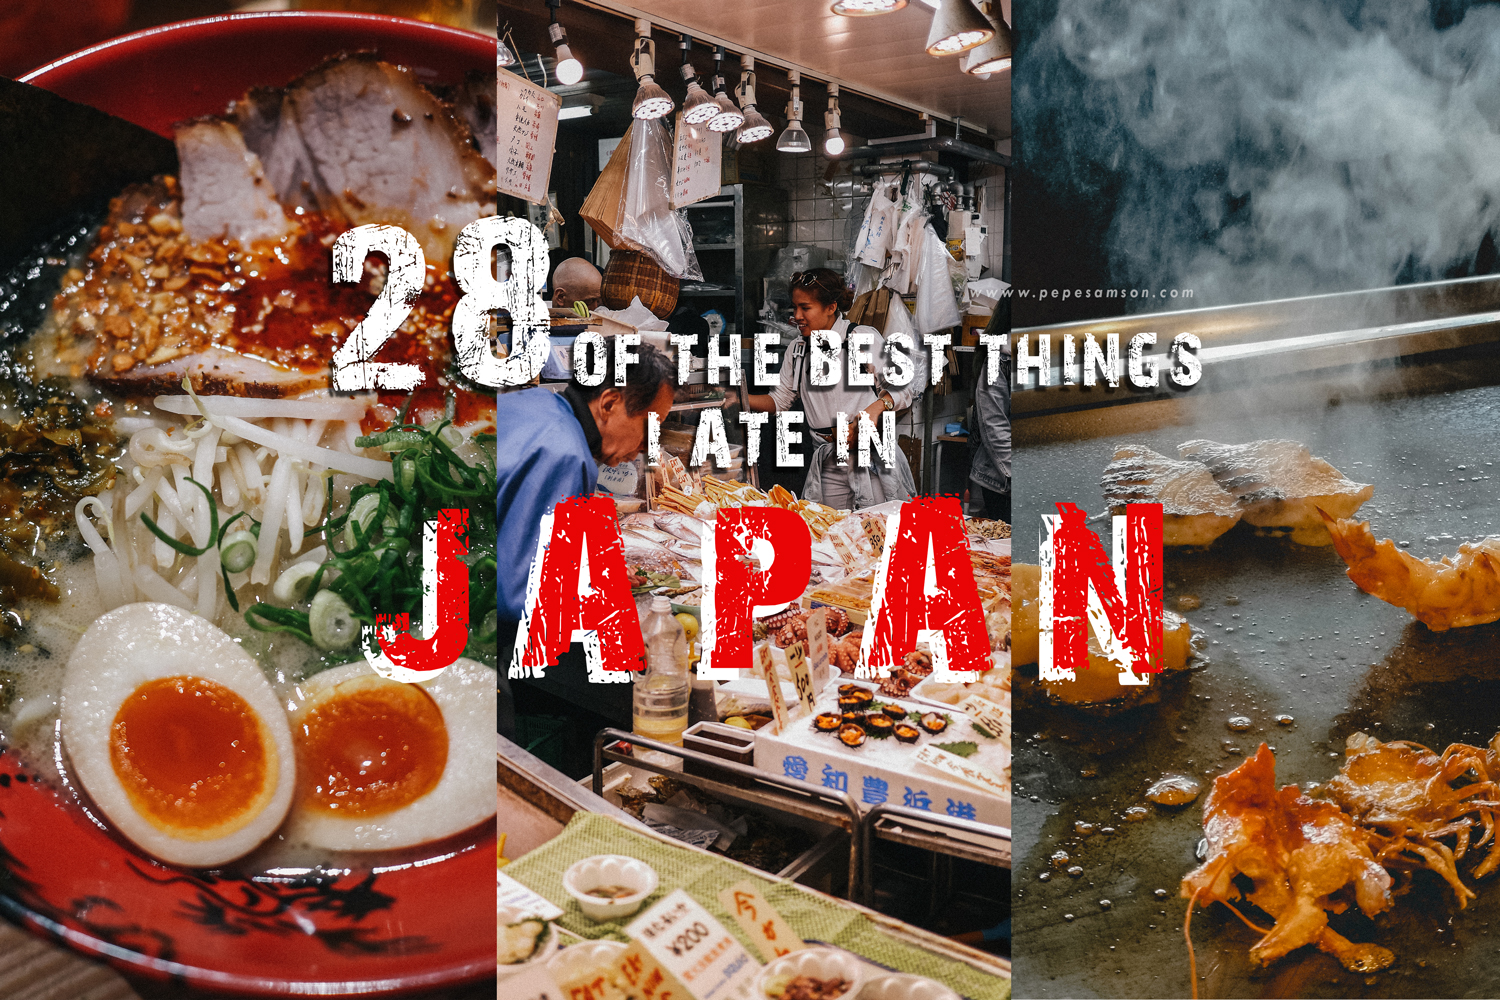 28 of the Best Things I Ate in Japan